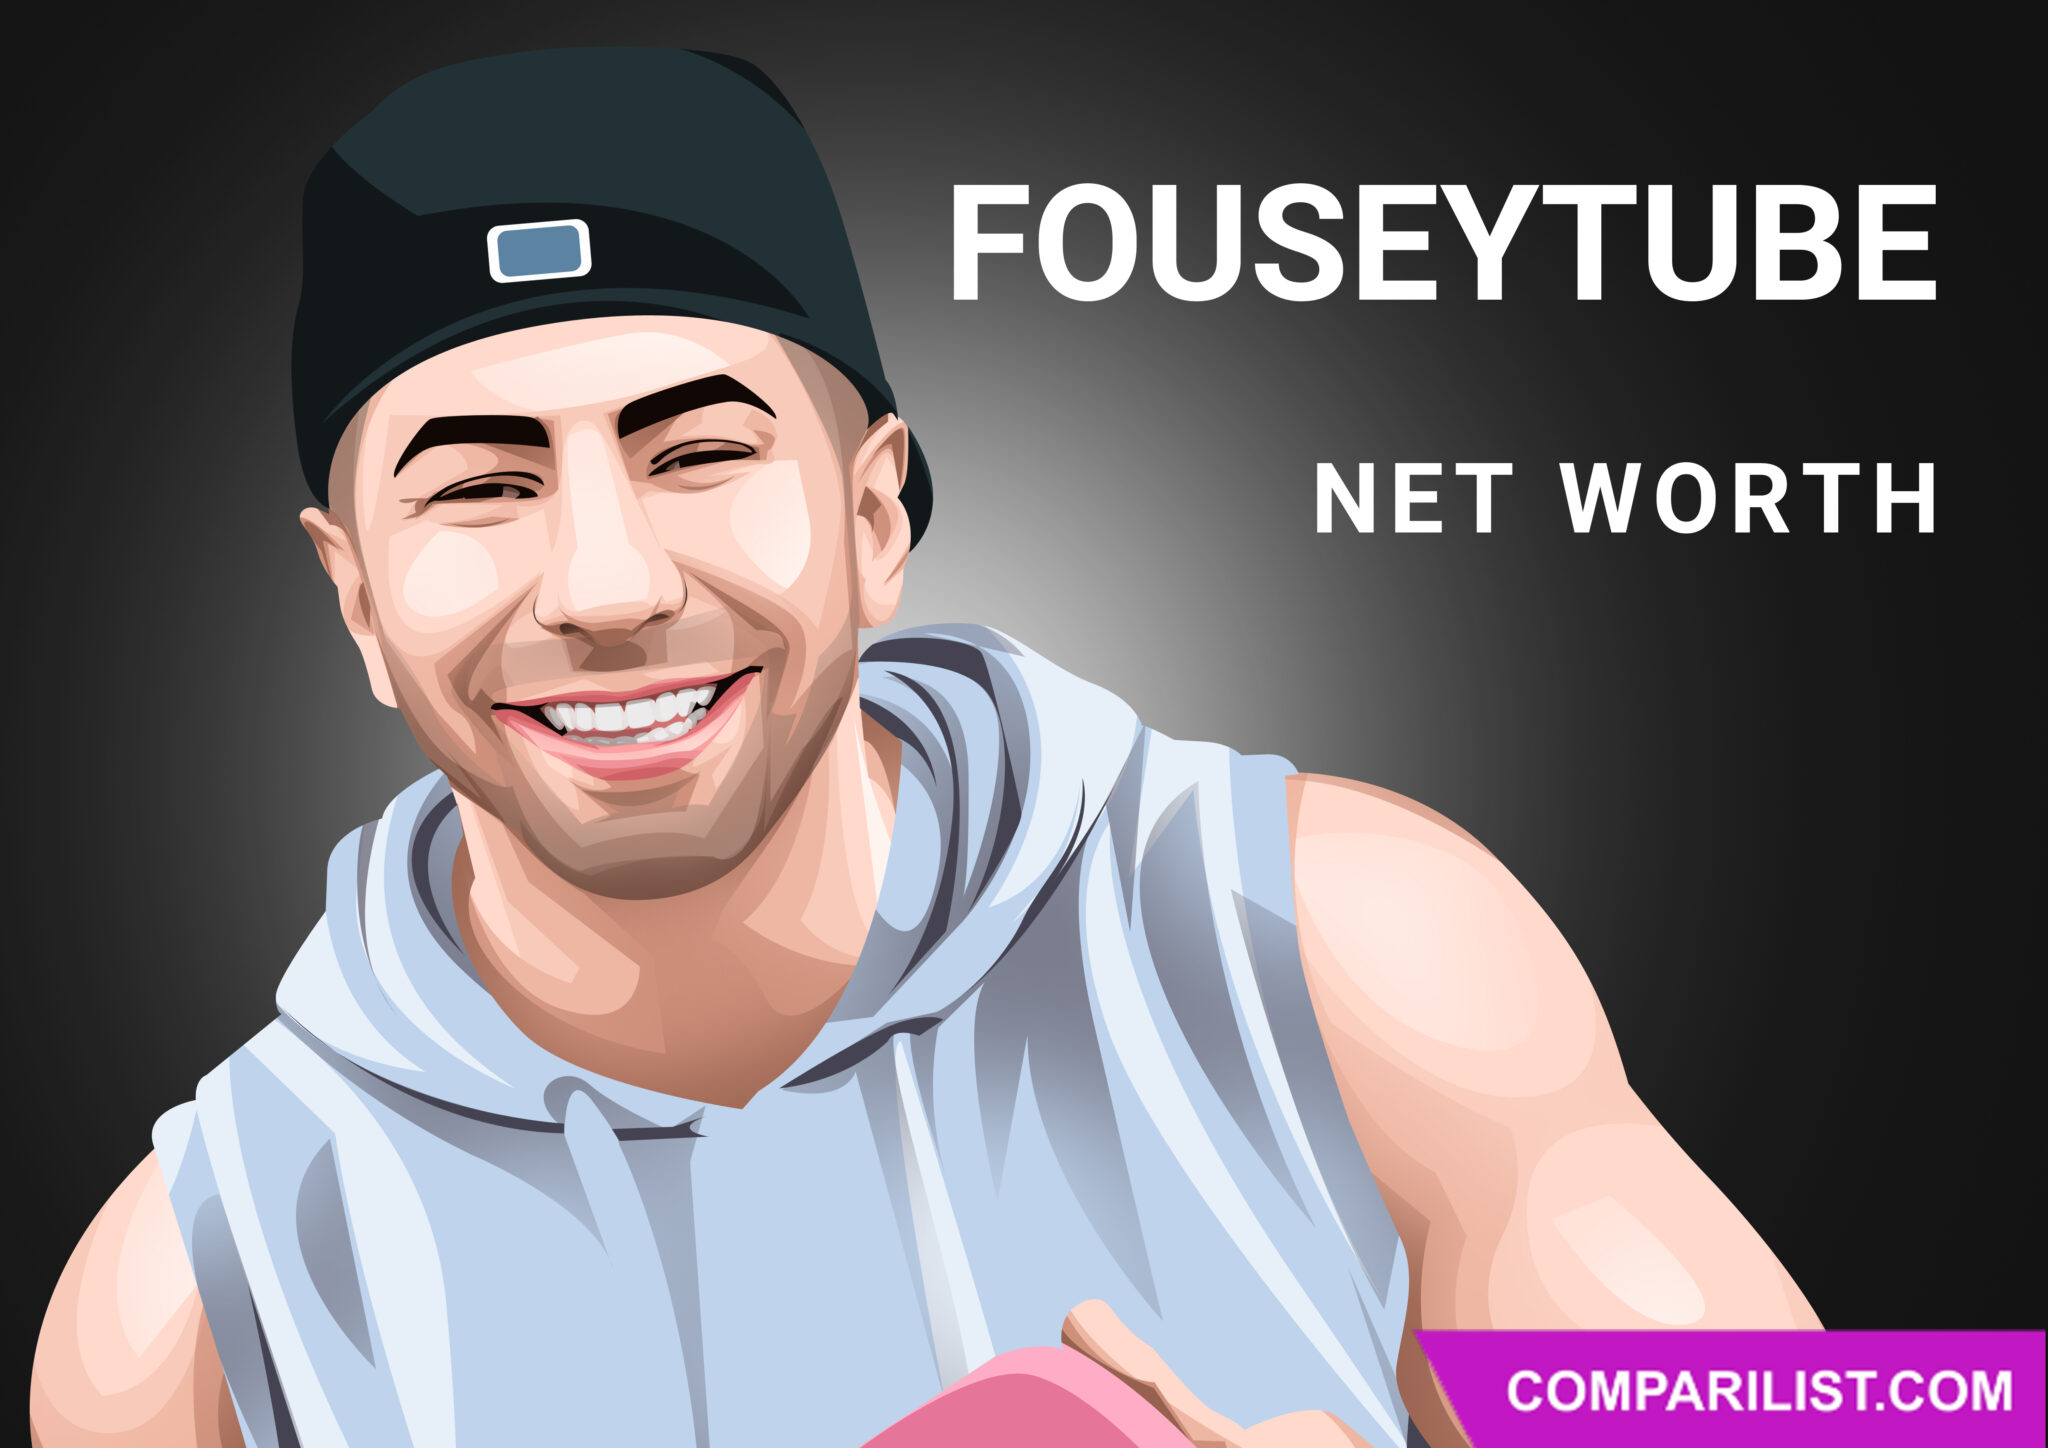 fouseyTUBE Net Worth 2019 | Sources of Income, Salary and More